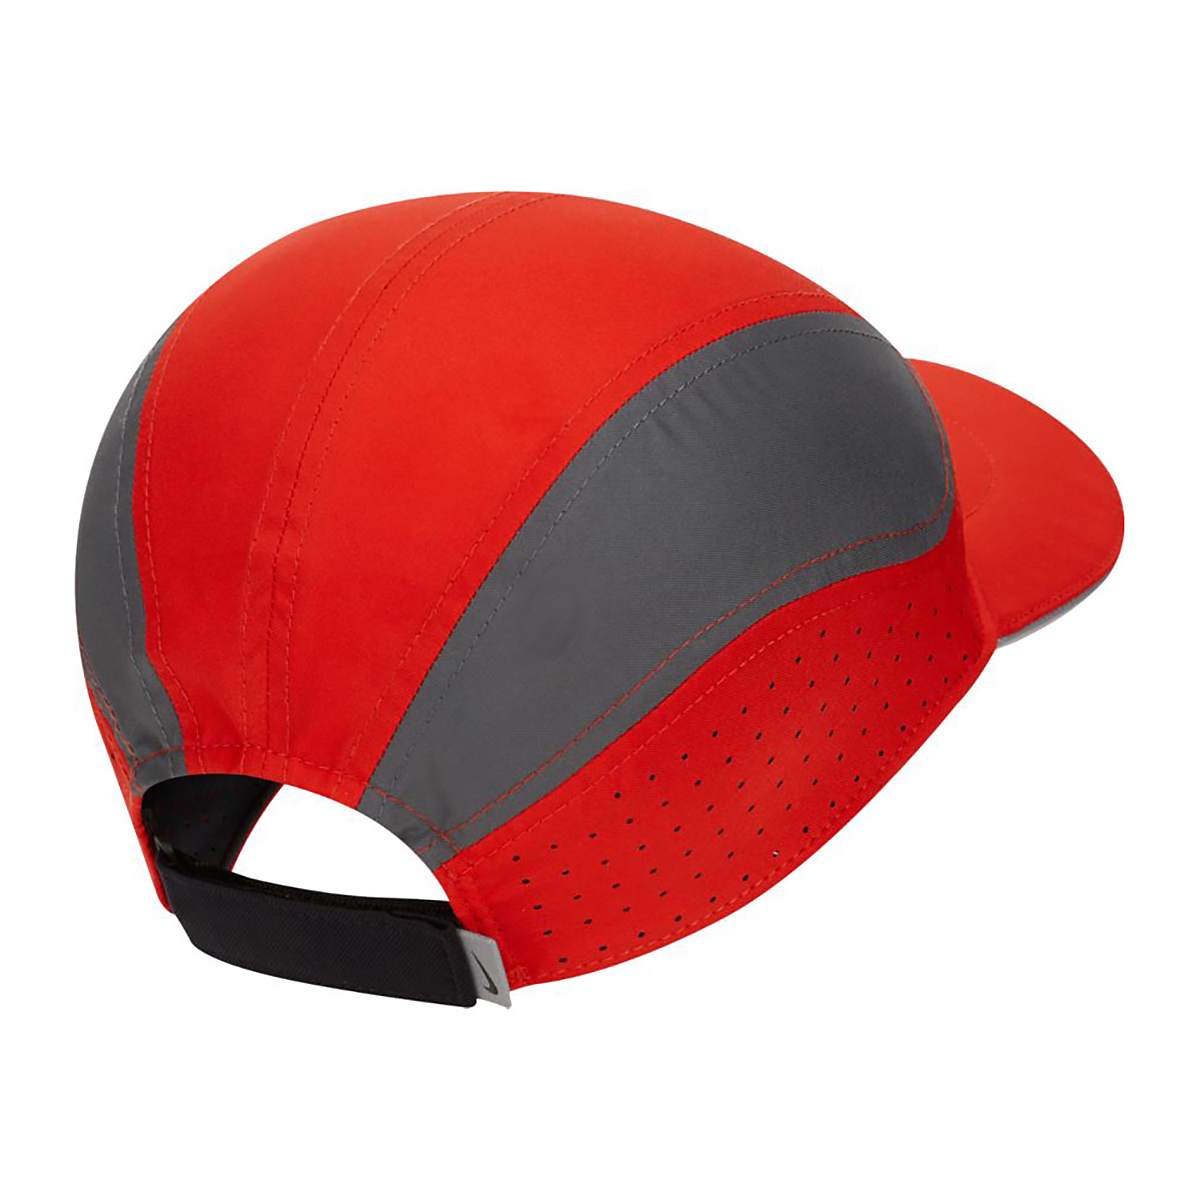 Nike AeroBill Tailwind Running Cap - Color: Red, Red, large, image 2